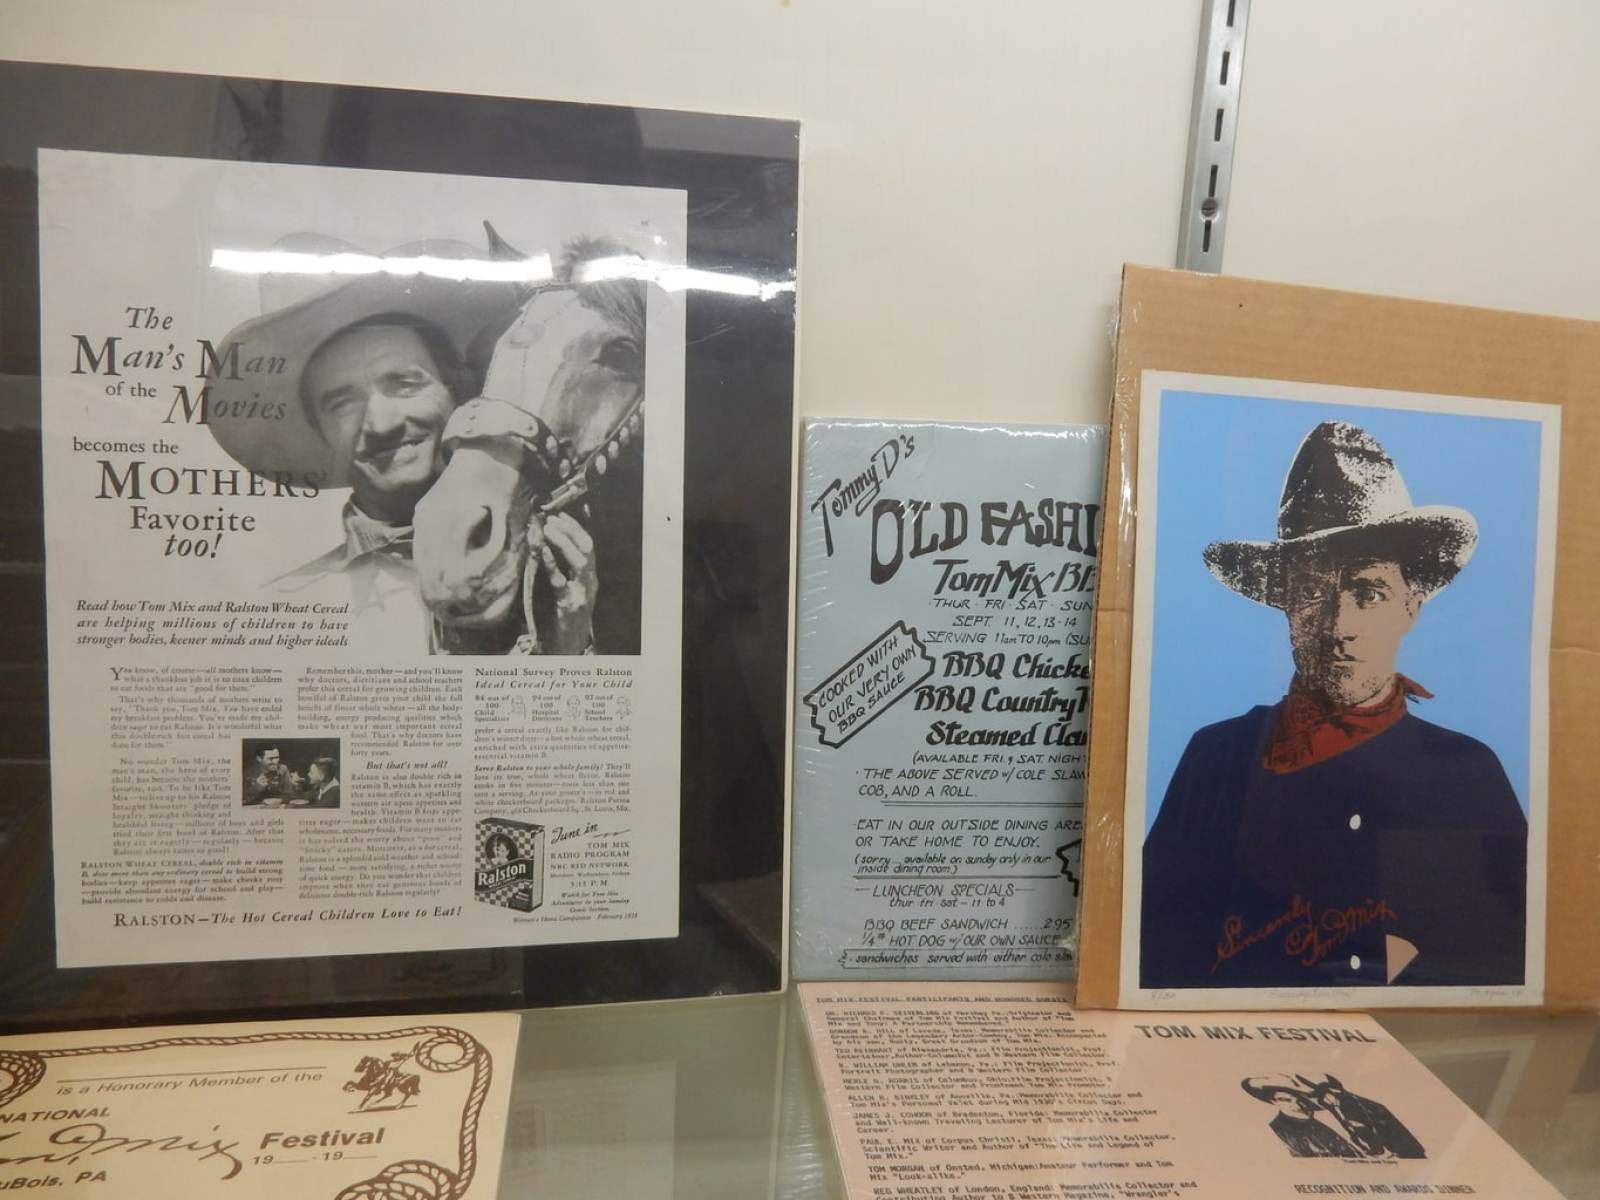 Tom Mix Hometown Dubois Historical Society PA